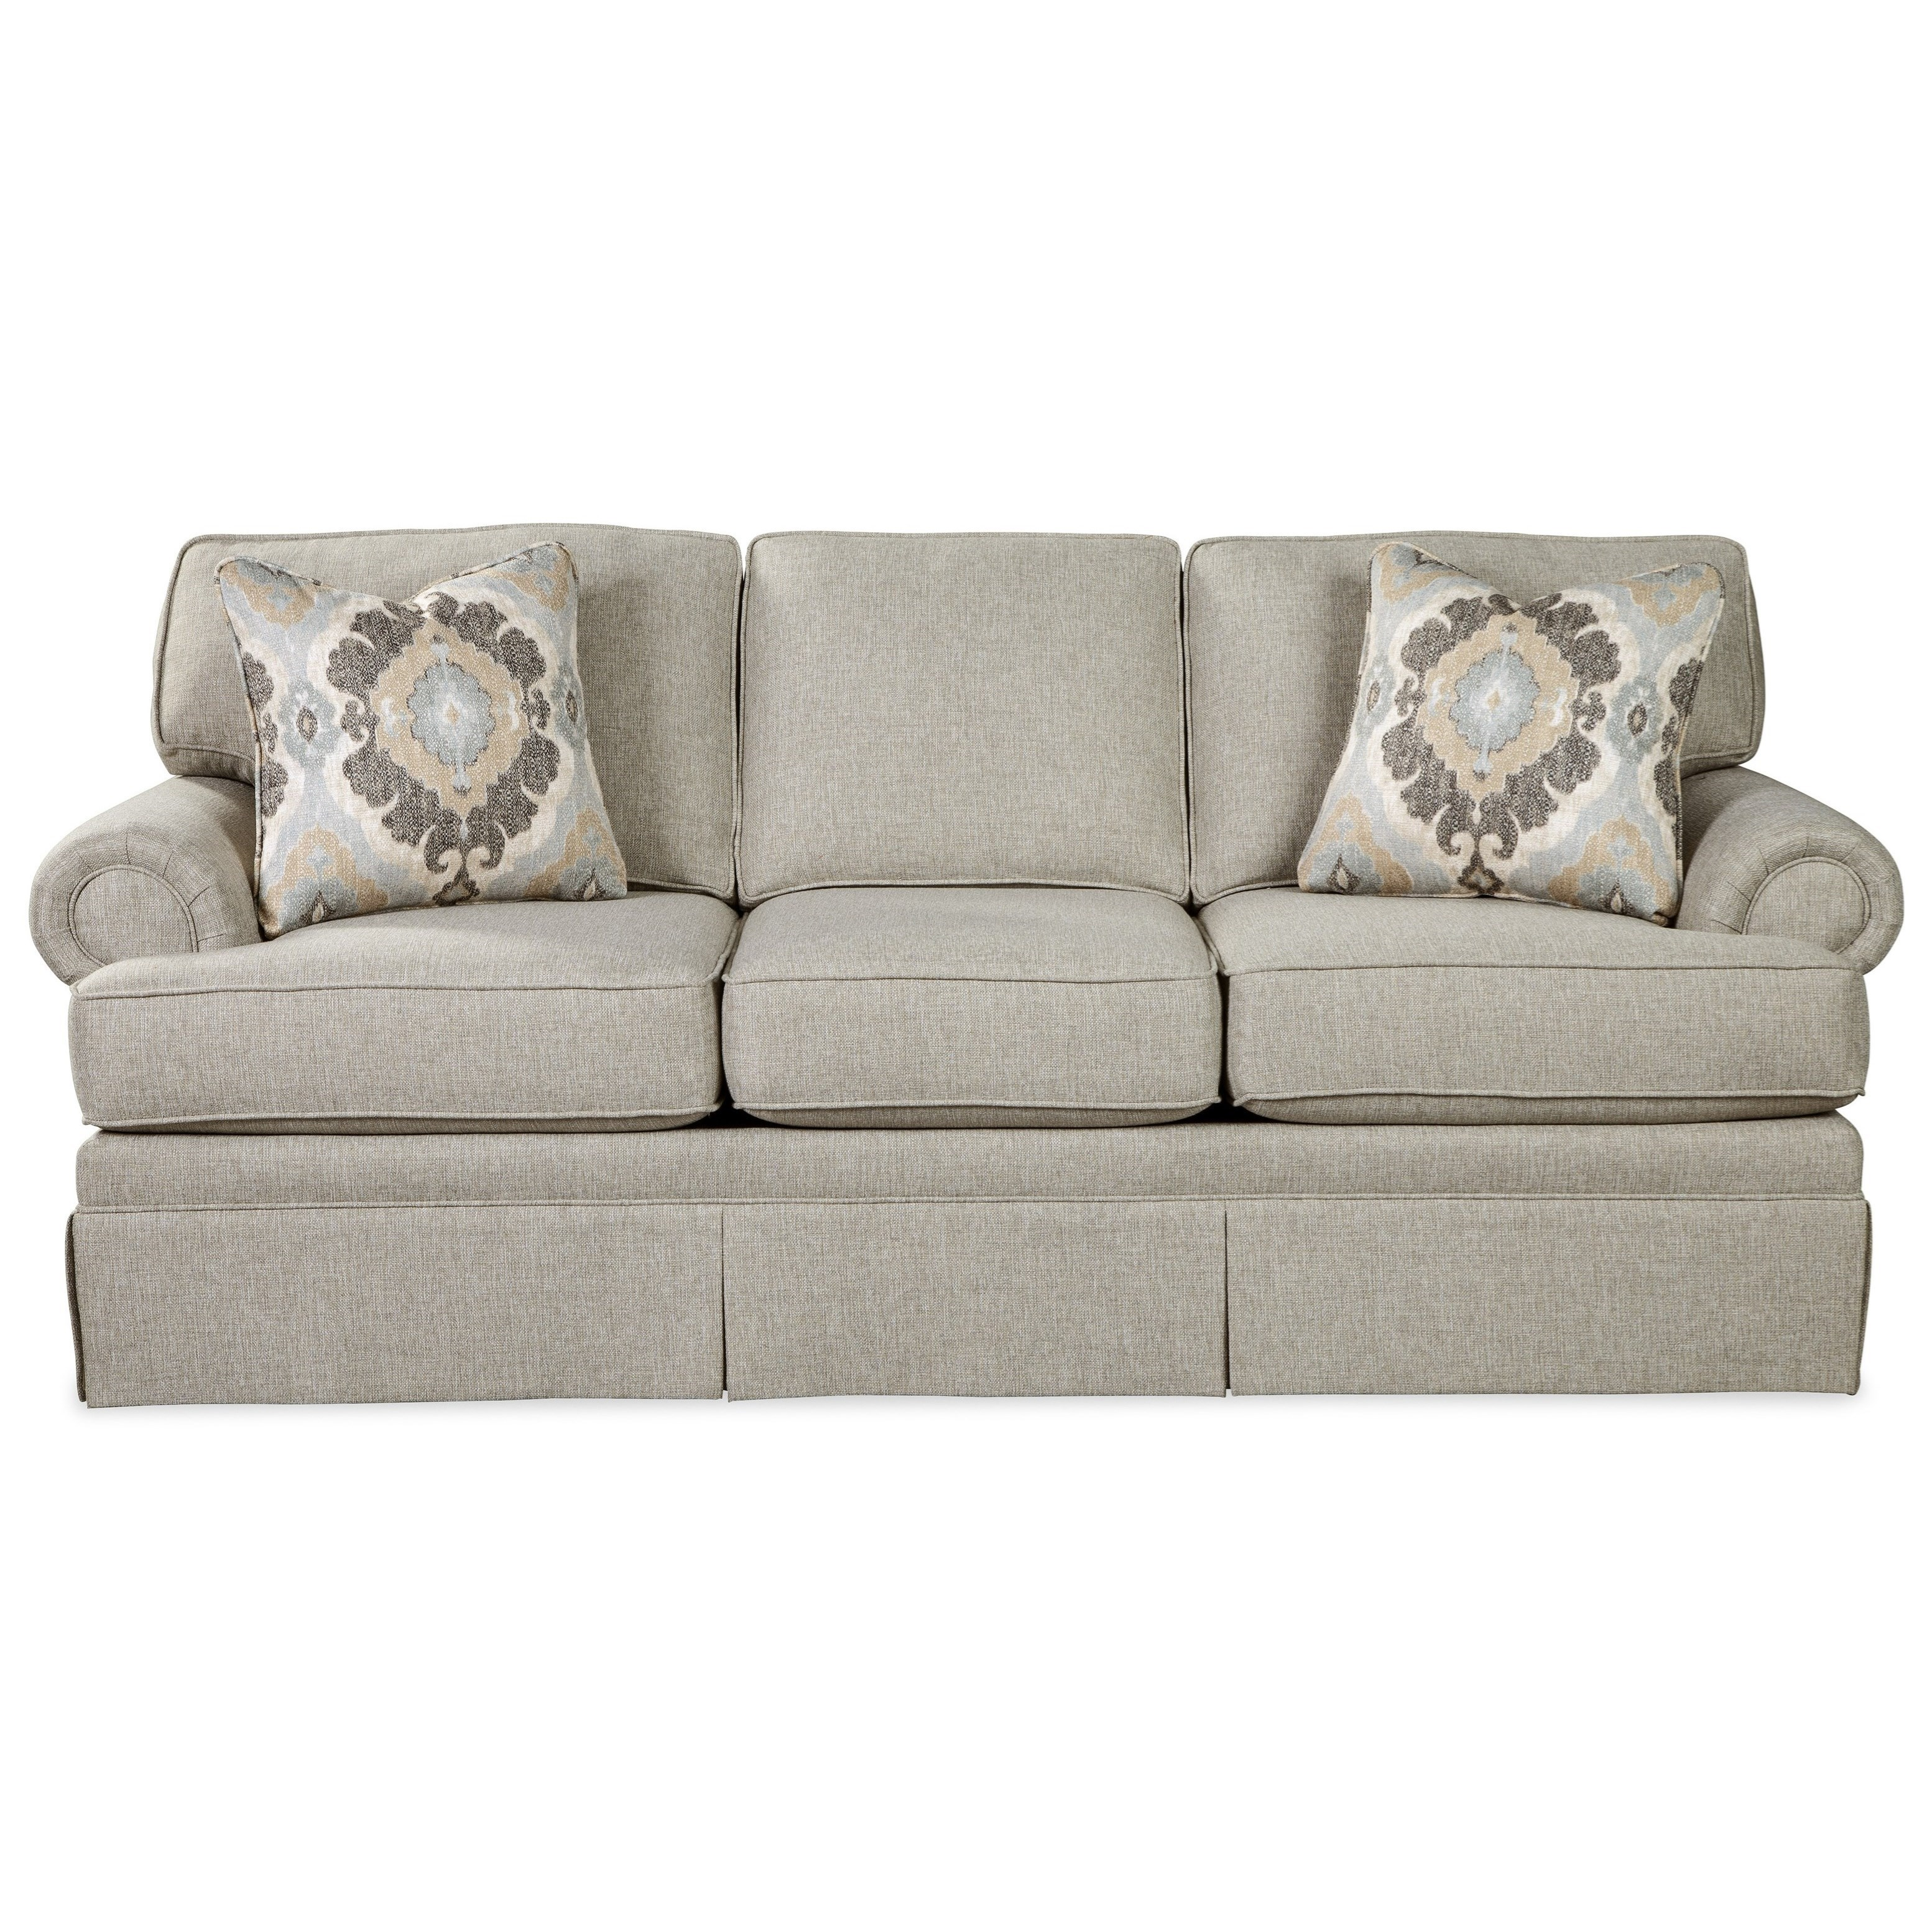 Craftmaster 981550 Traditional Skirted Sofa With Queen Memory Foam Sleeper